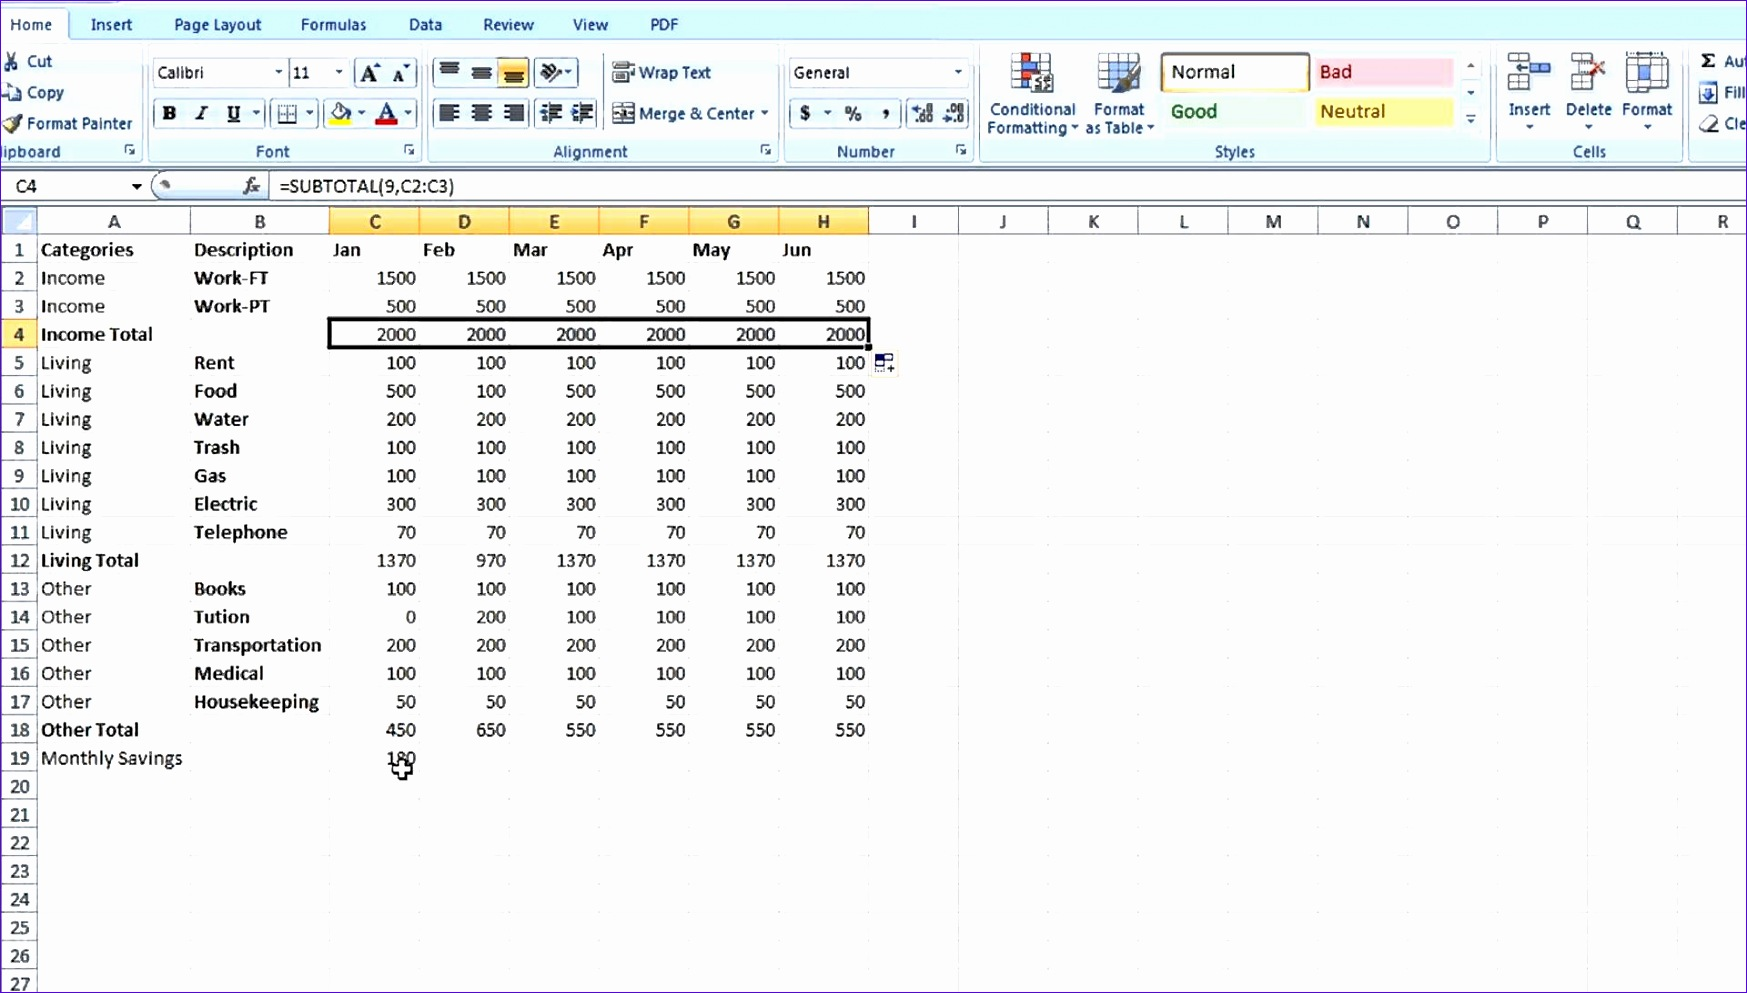 Excel Survey Results Template Jaaks Awesome How to Set Up An Excel Spreadsheet for Survey Results